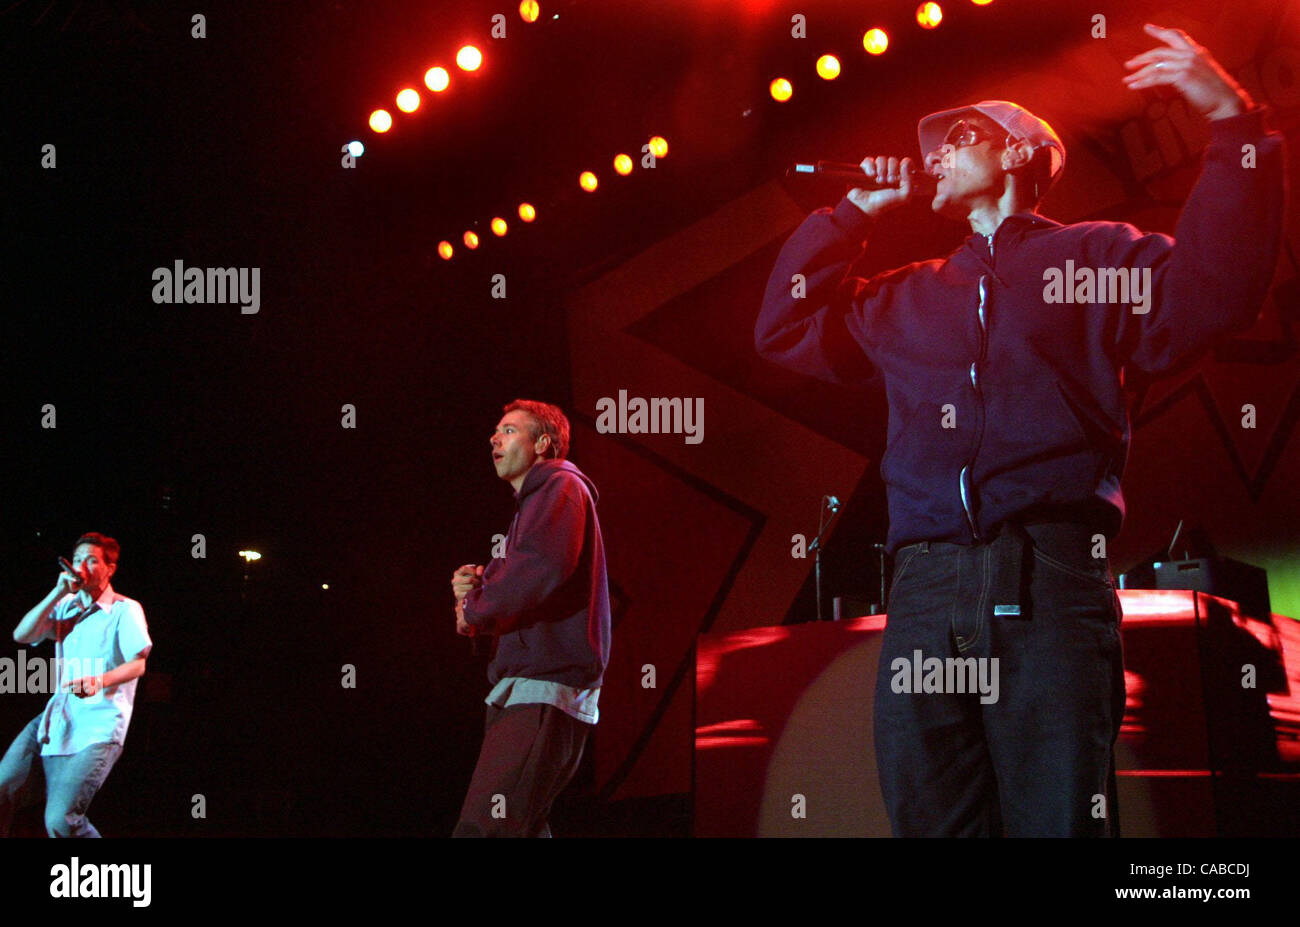 beastie boys stock photos beastie boys stock images alamy. Black Bedroom Furniture Sets. Home Design Ideas